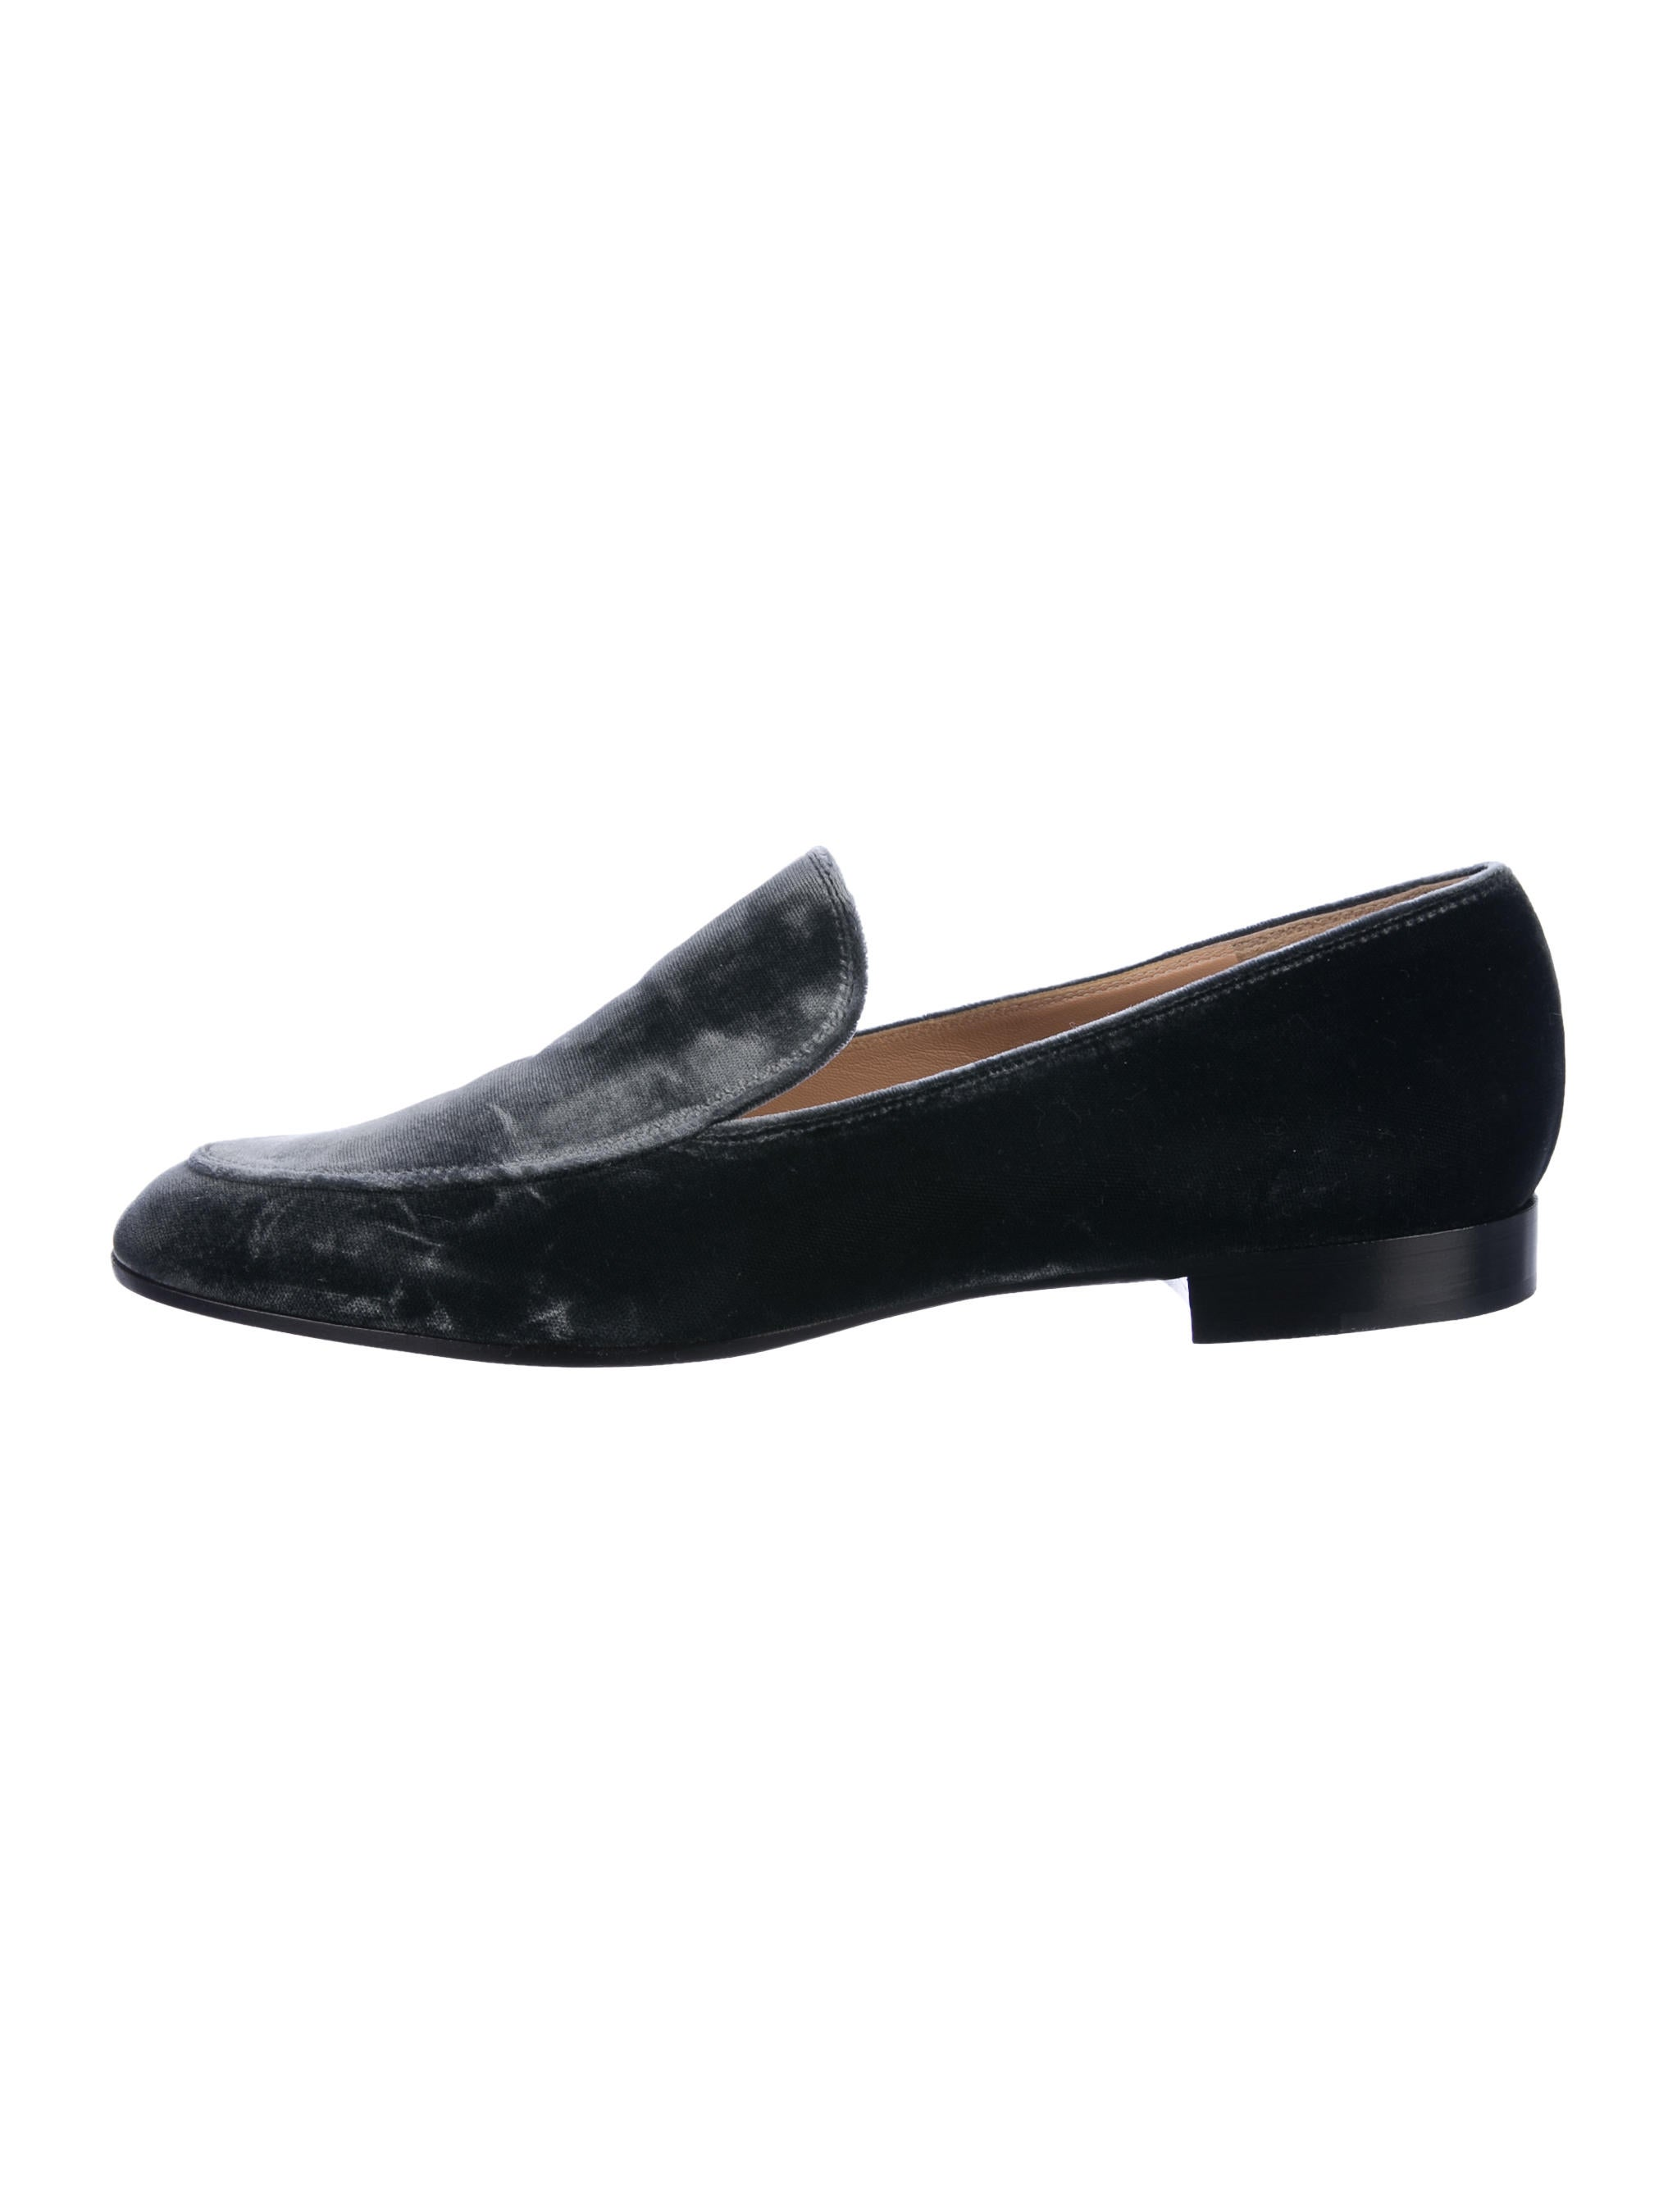 Gianvito Rossi Velvet Round-Toe Loafers outlet great deals cheap supply explore cheap online best seller sale online shop offer online F0FyKLQRP